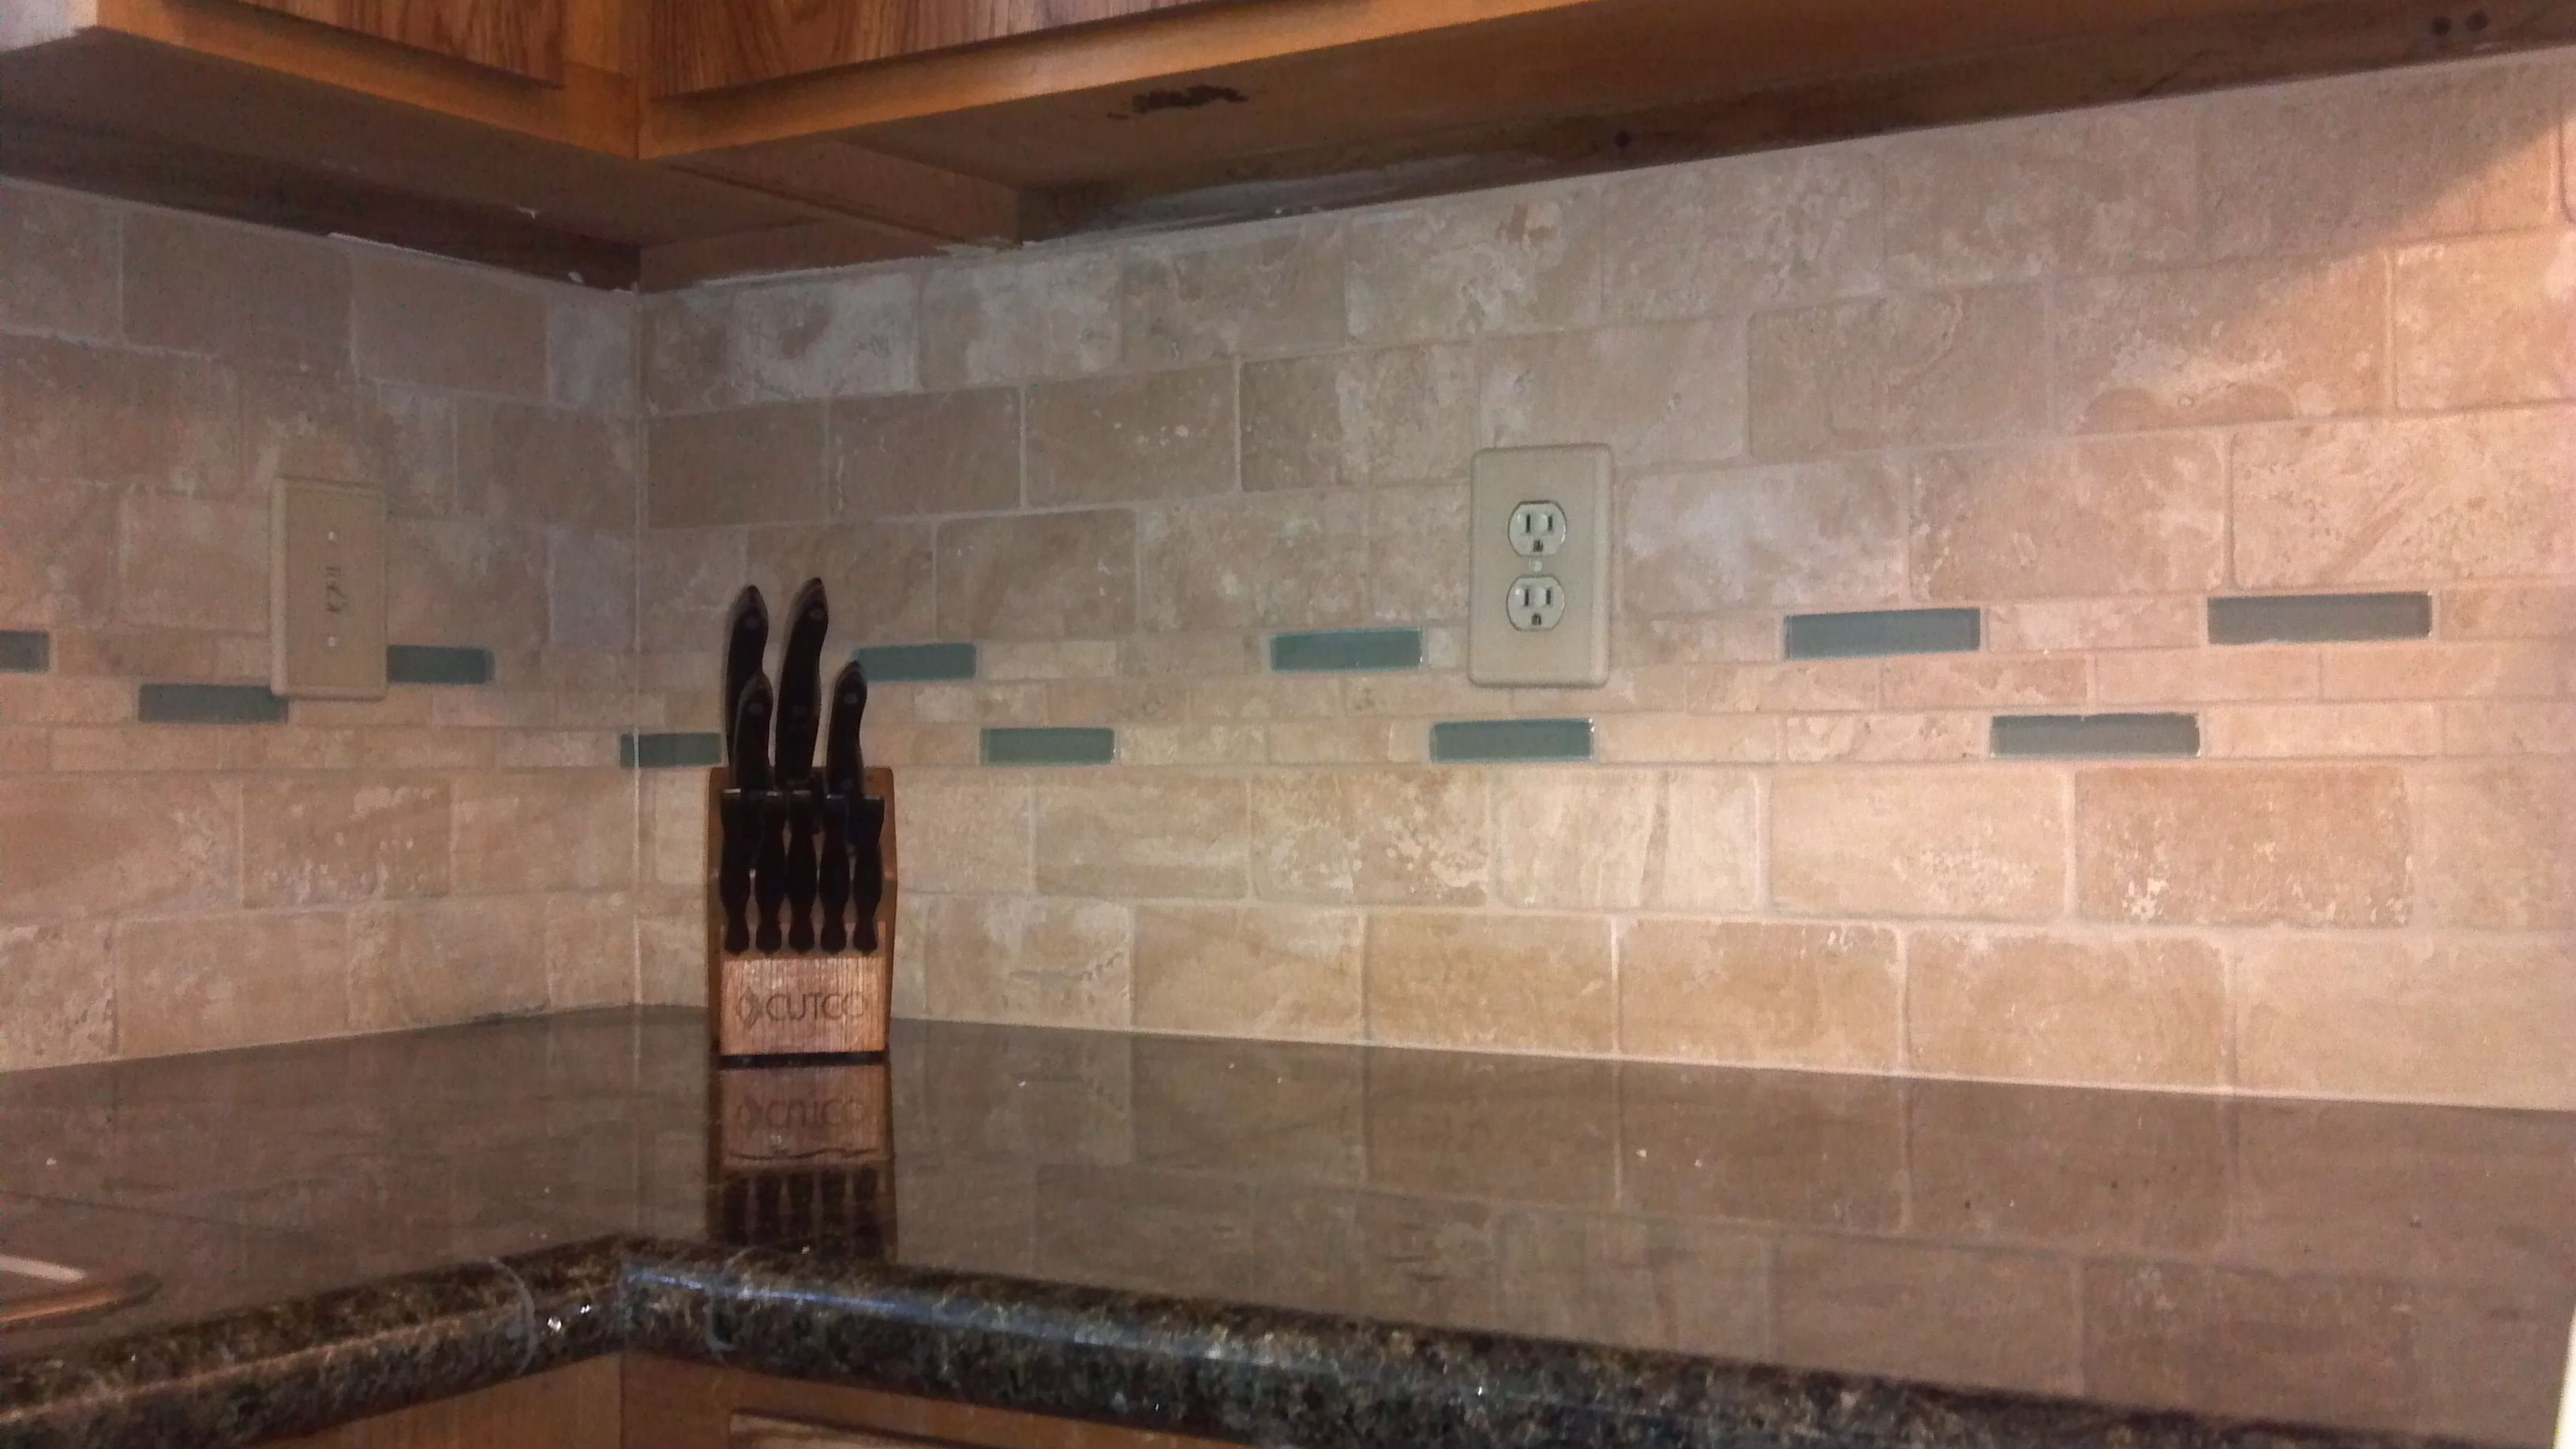 Perfect Tile Backsplash AND Glass AND Travertine | Tile Installation U2013 Uba Tuba  Granite U2013 Travertine Backsplash Great Ideas